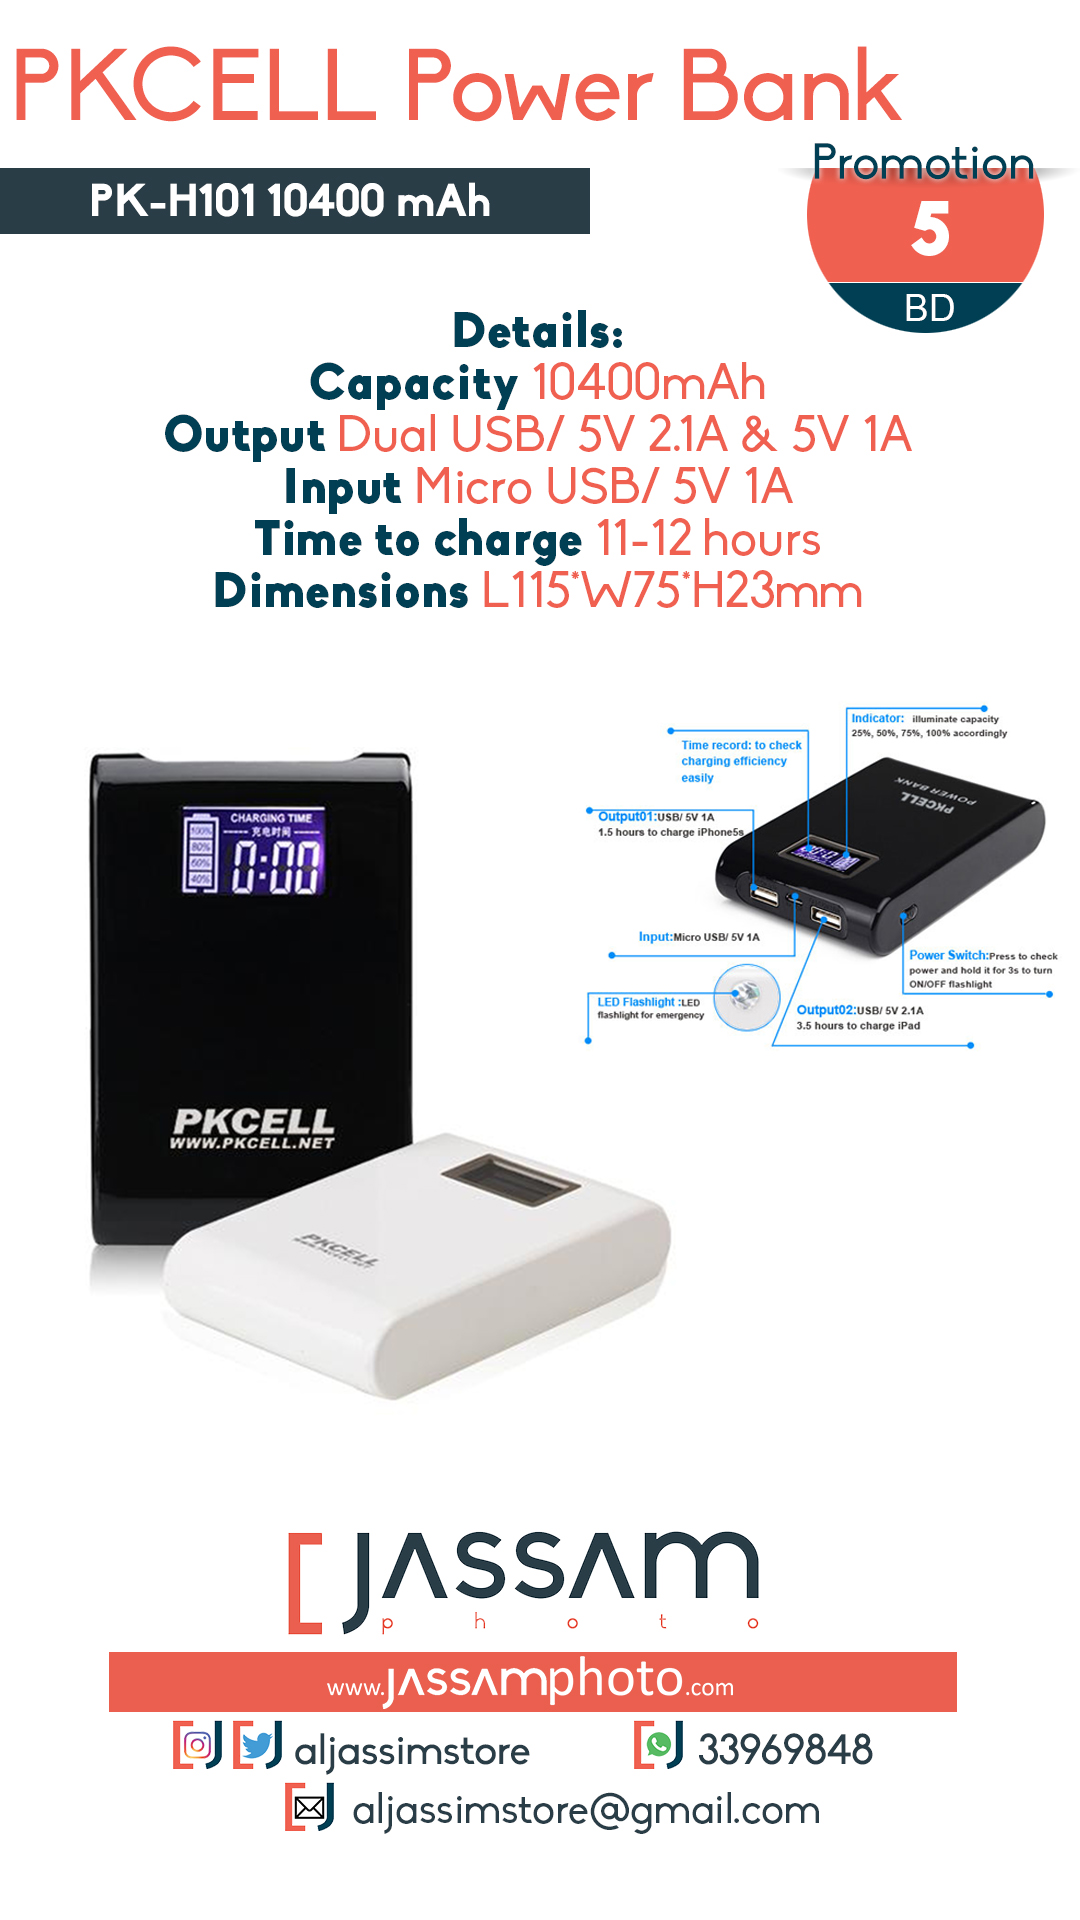 PKcell Power Bank